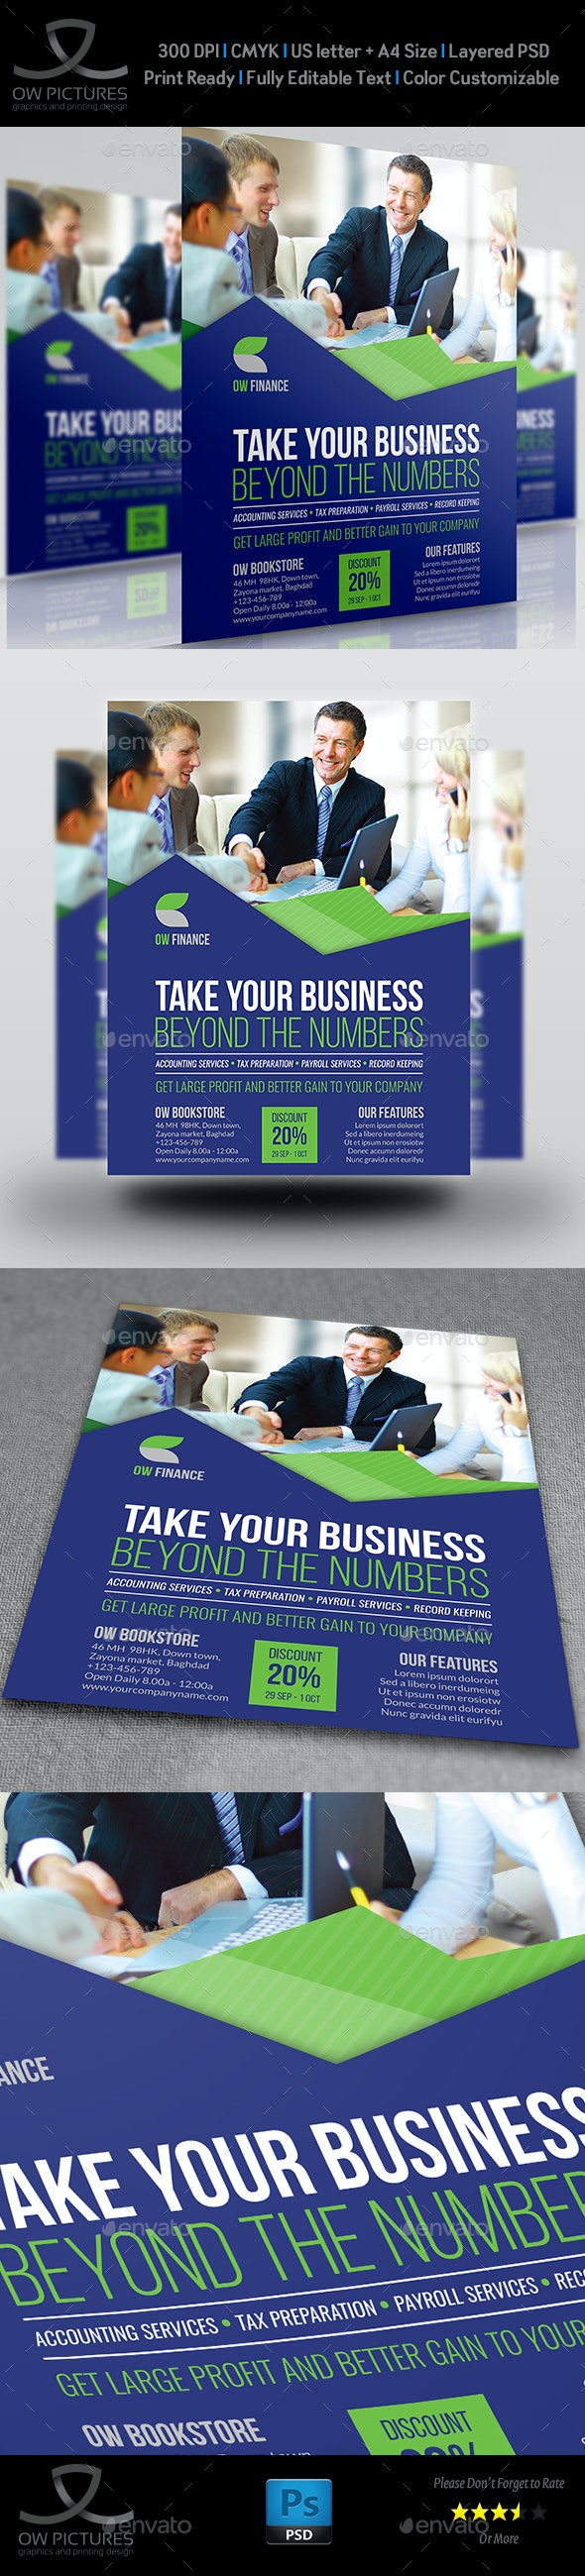 Accounting Firm Flyer Template - Corporate Flyers